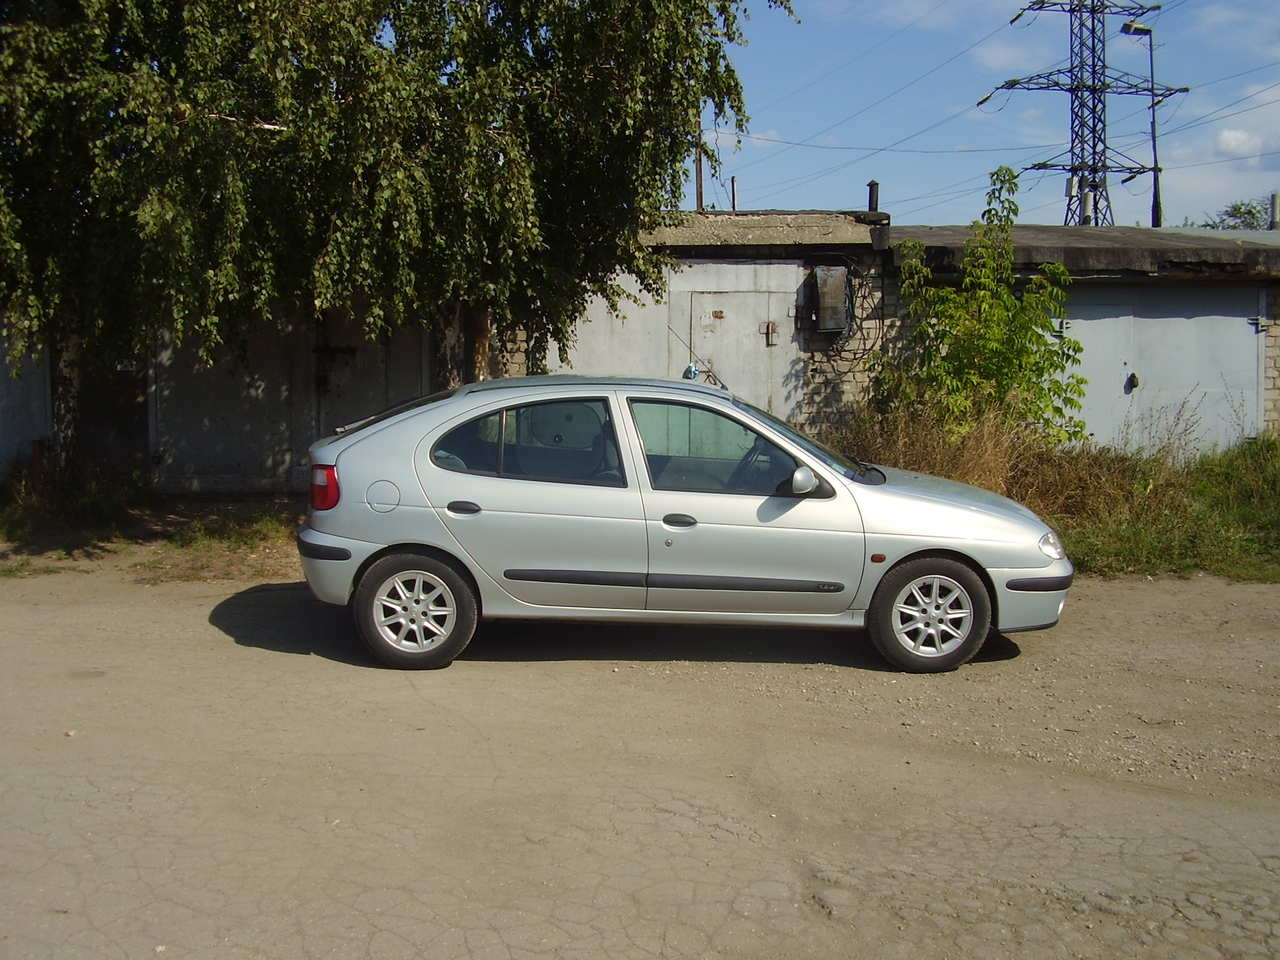 Renault Megane 1999 Review